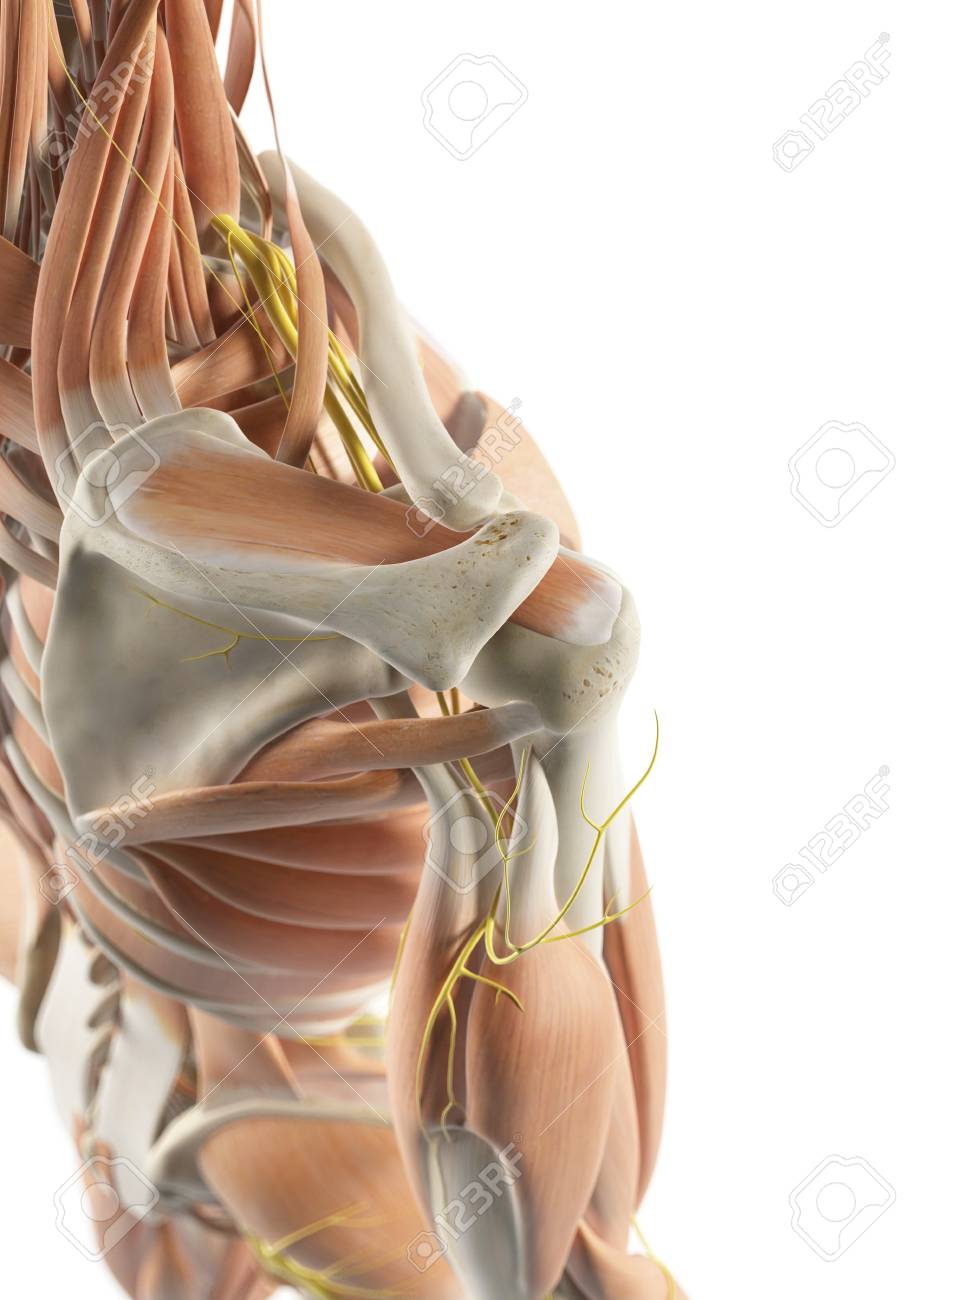 Shoulder Muscles And Nerves, Artwork Stock Photo, Picture And ...